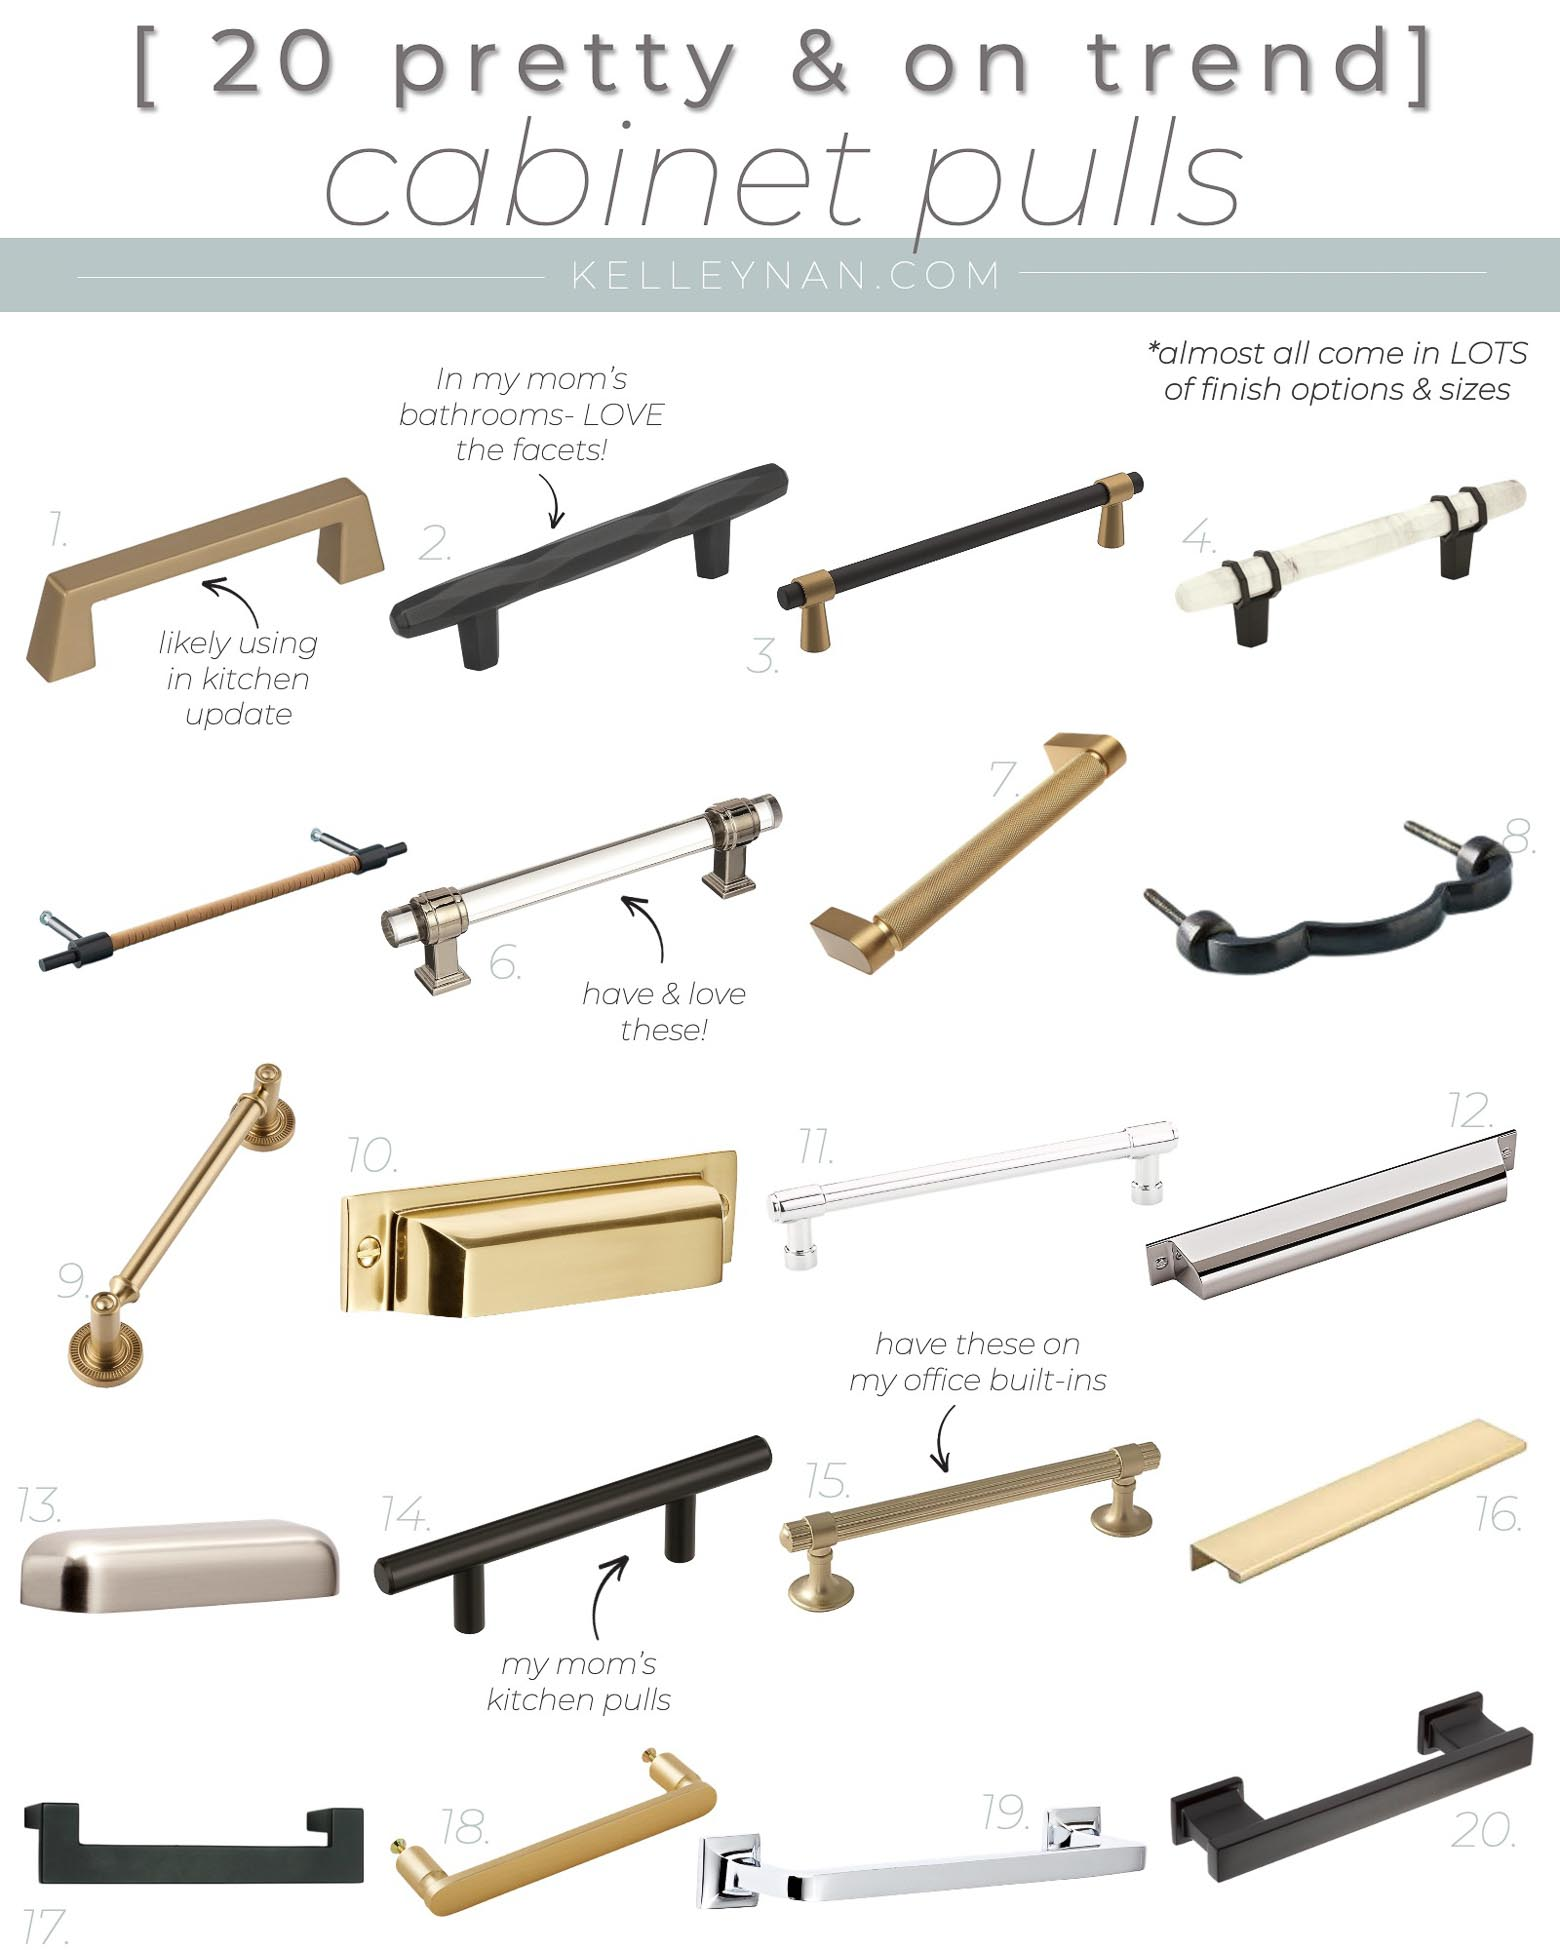 20 Pretty Kitchen Cabinet Pulls and Bathroom Hardware -- Transitional to Modern to Fit Almost Any Style!